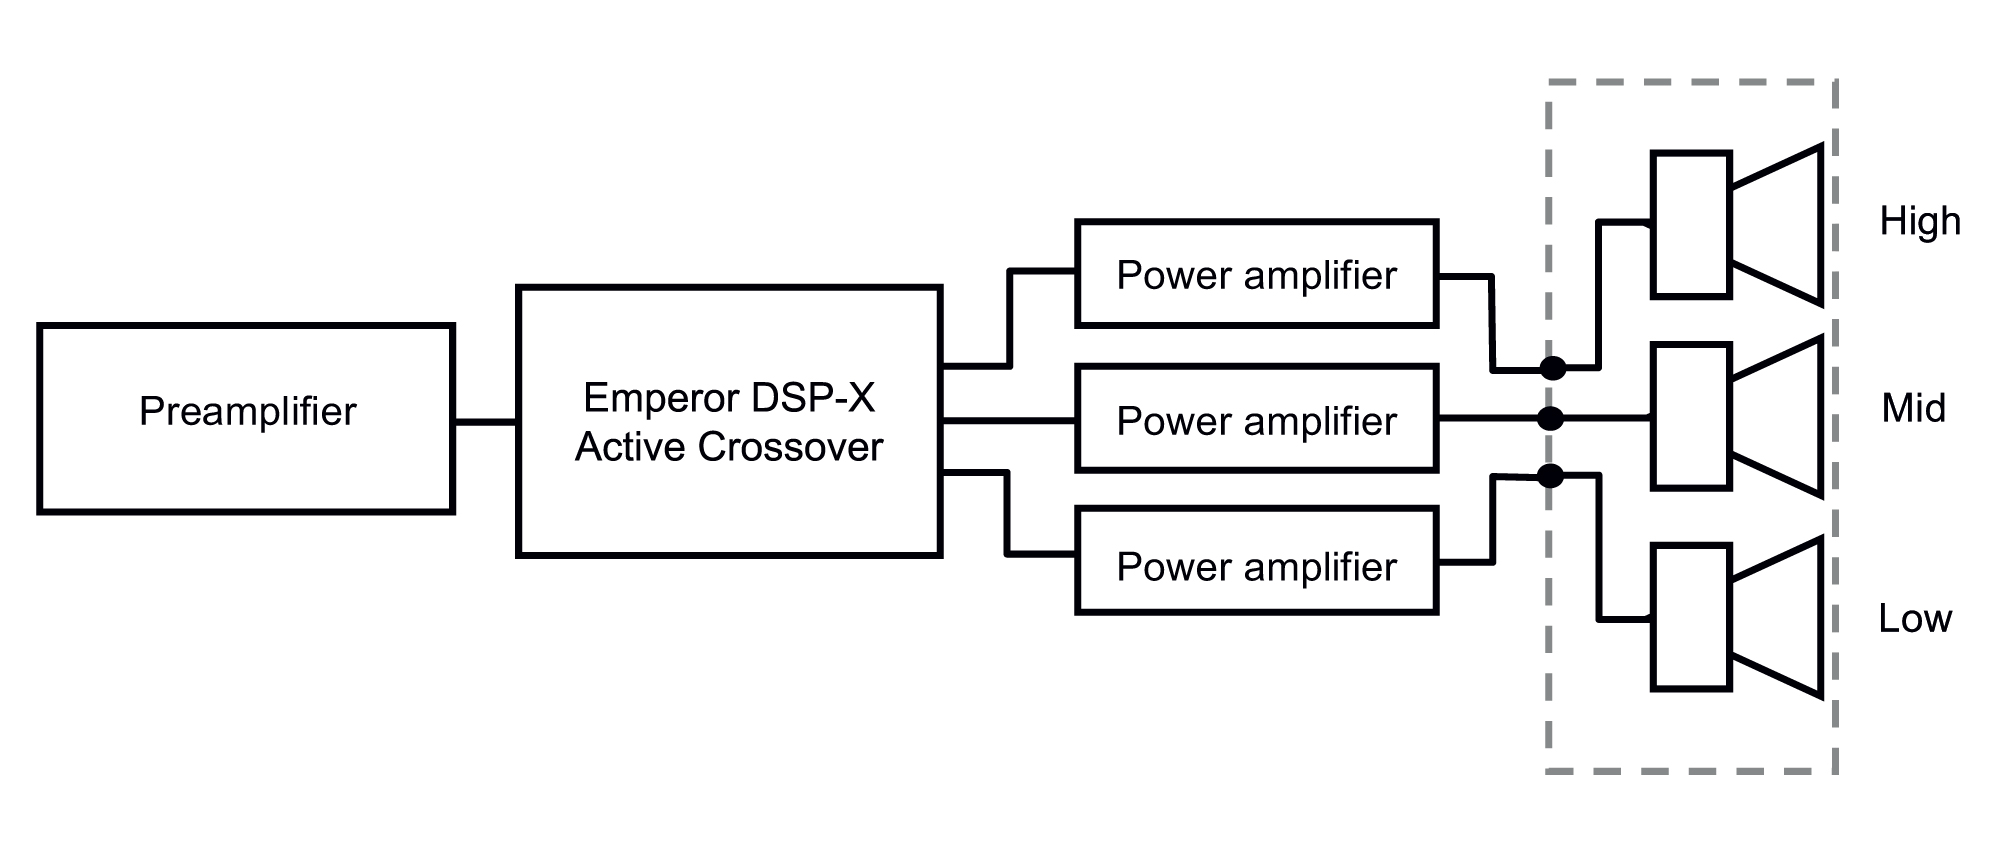 Figure 2. An example of a 3-way active loudspeaker system